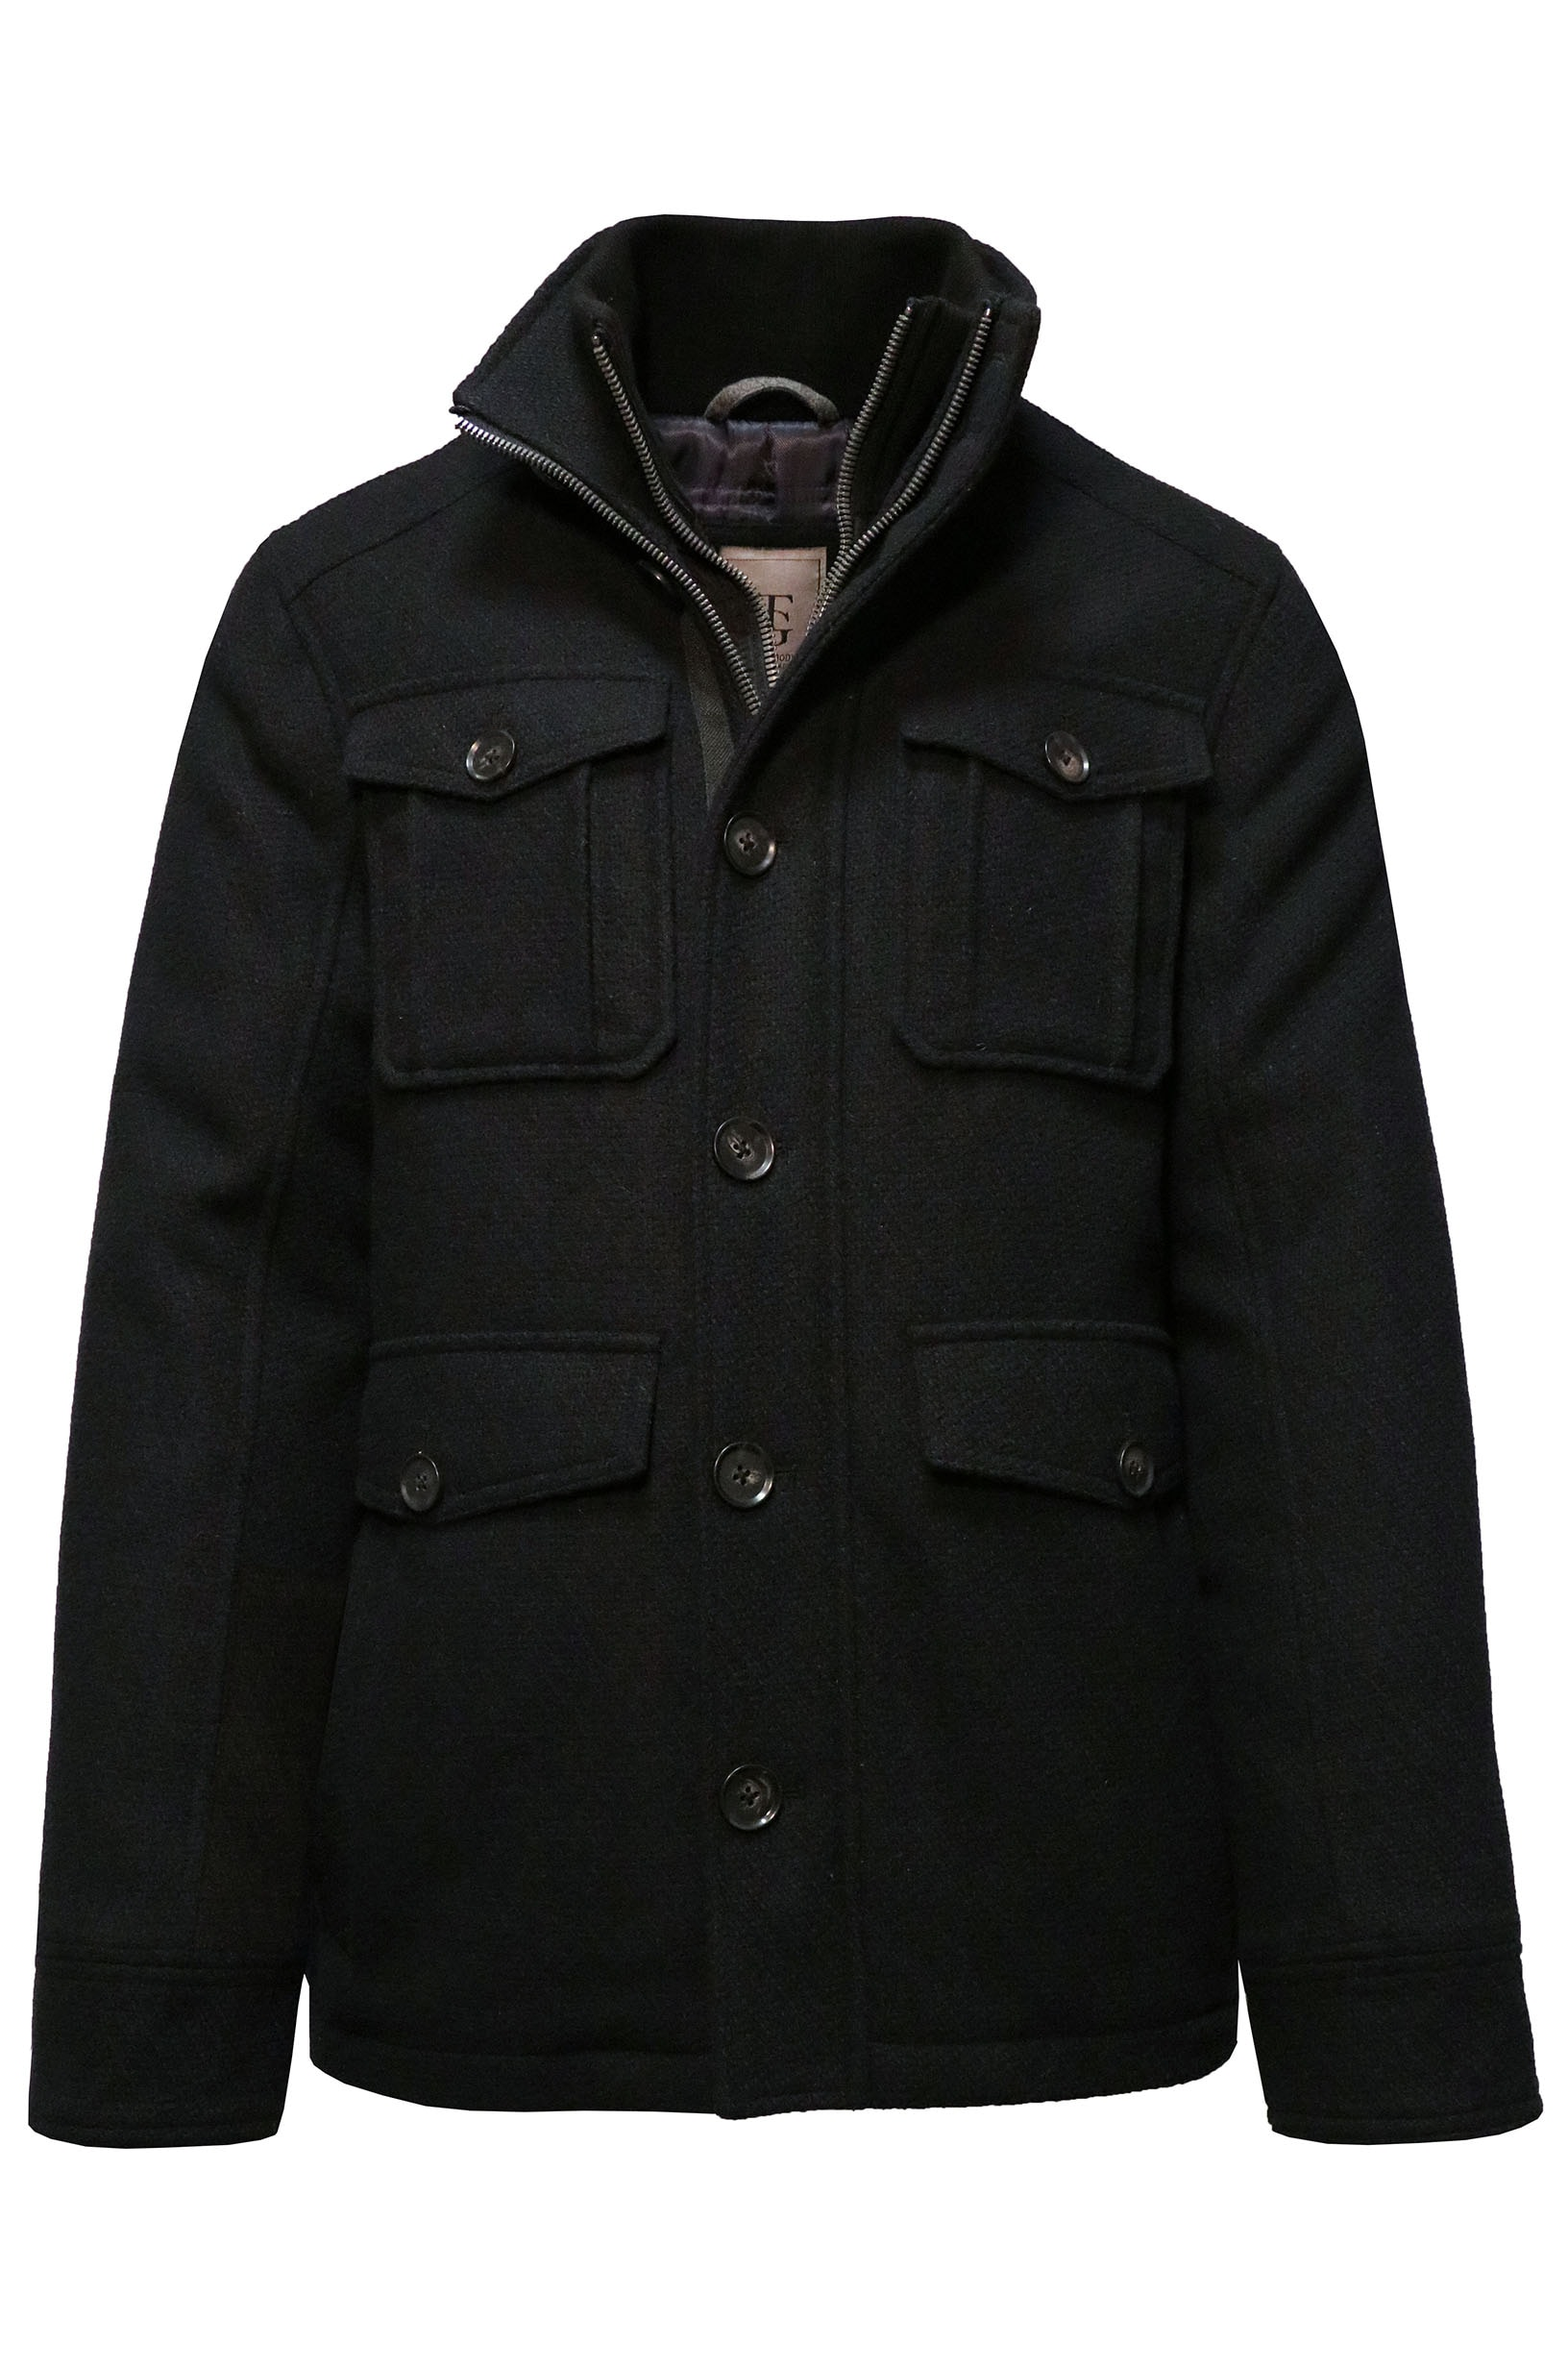 Thomas Goodwin Winterjacke | Bekleidung > Jacken > Winterjacken | Thomas Goodwin